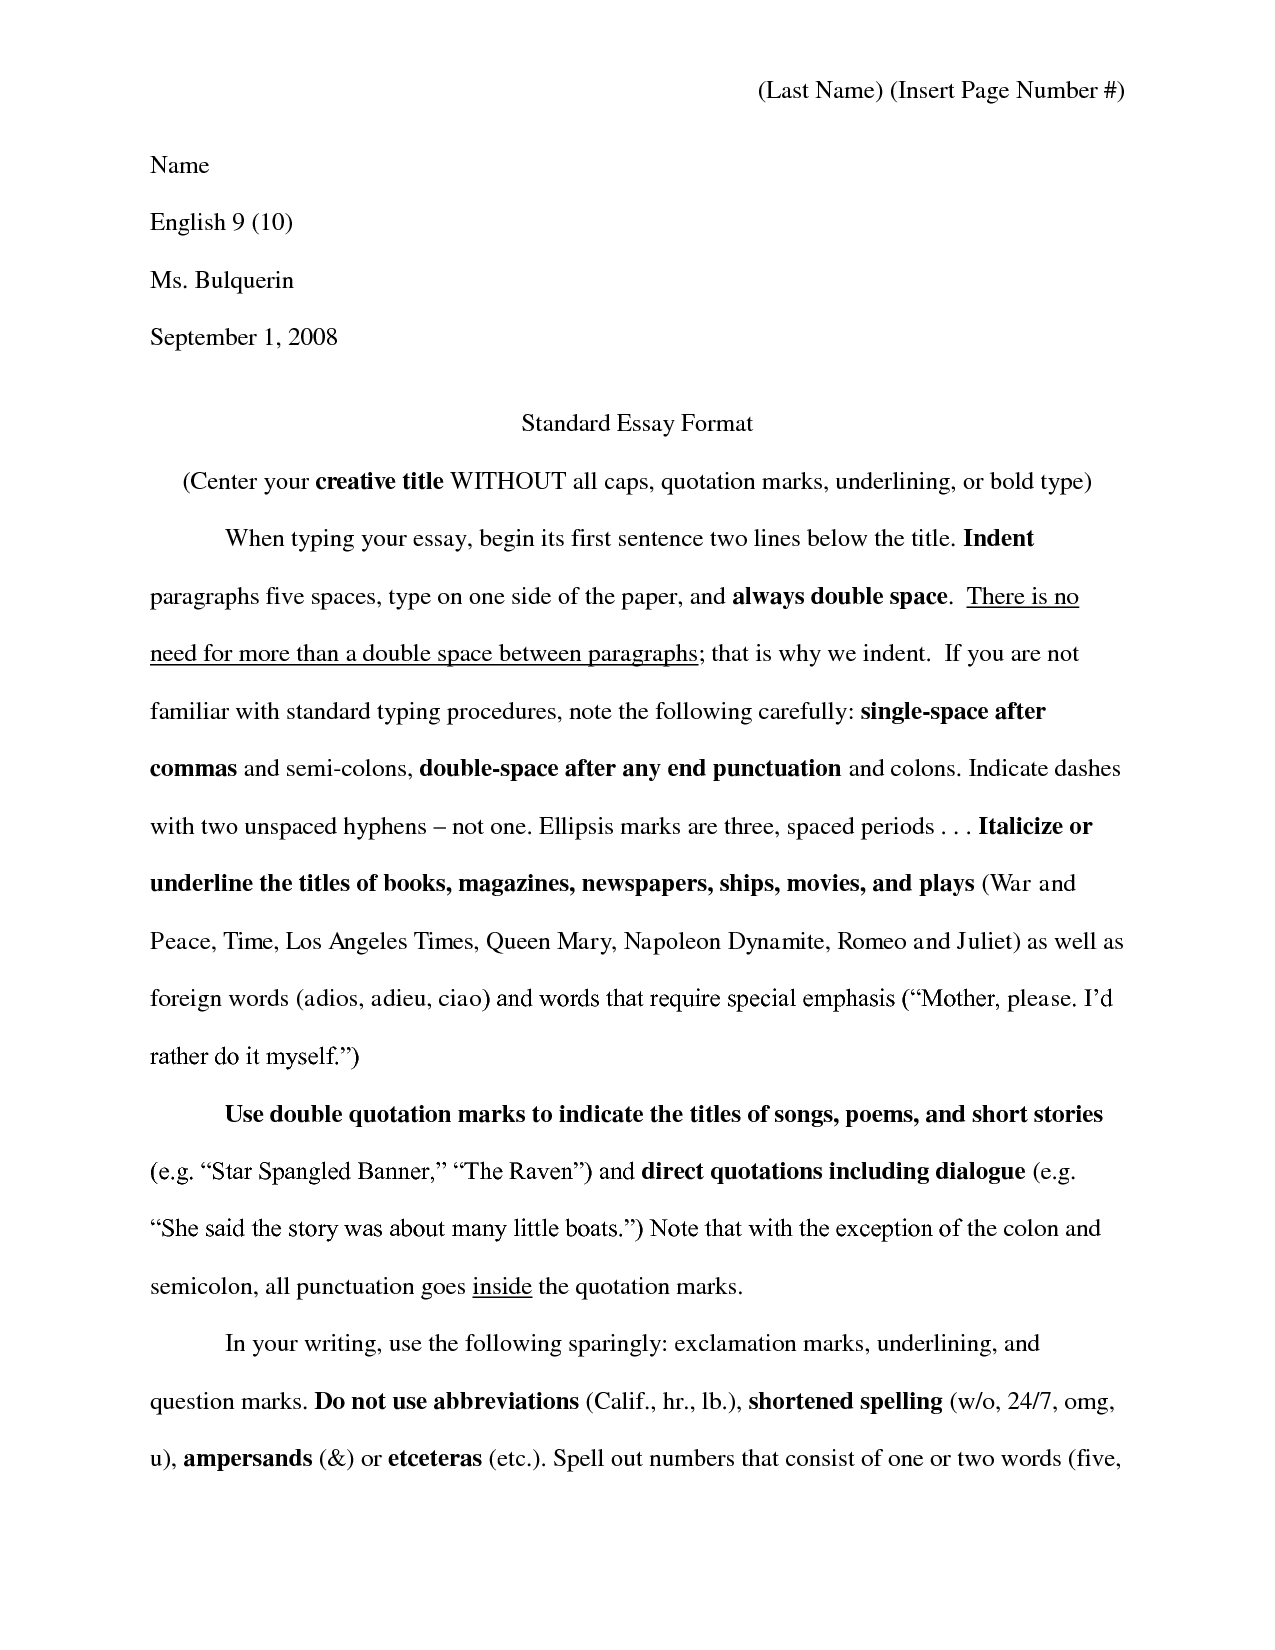 003 Proper Heading For An Essay Fascinating College Application Scholarship Full